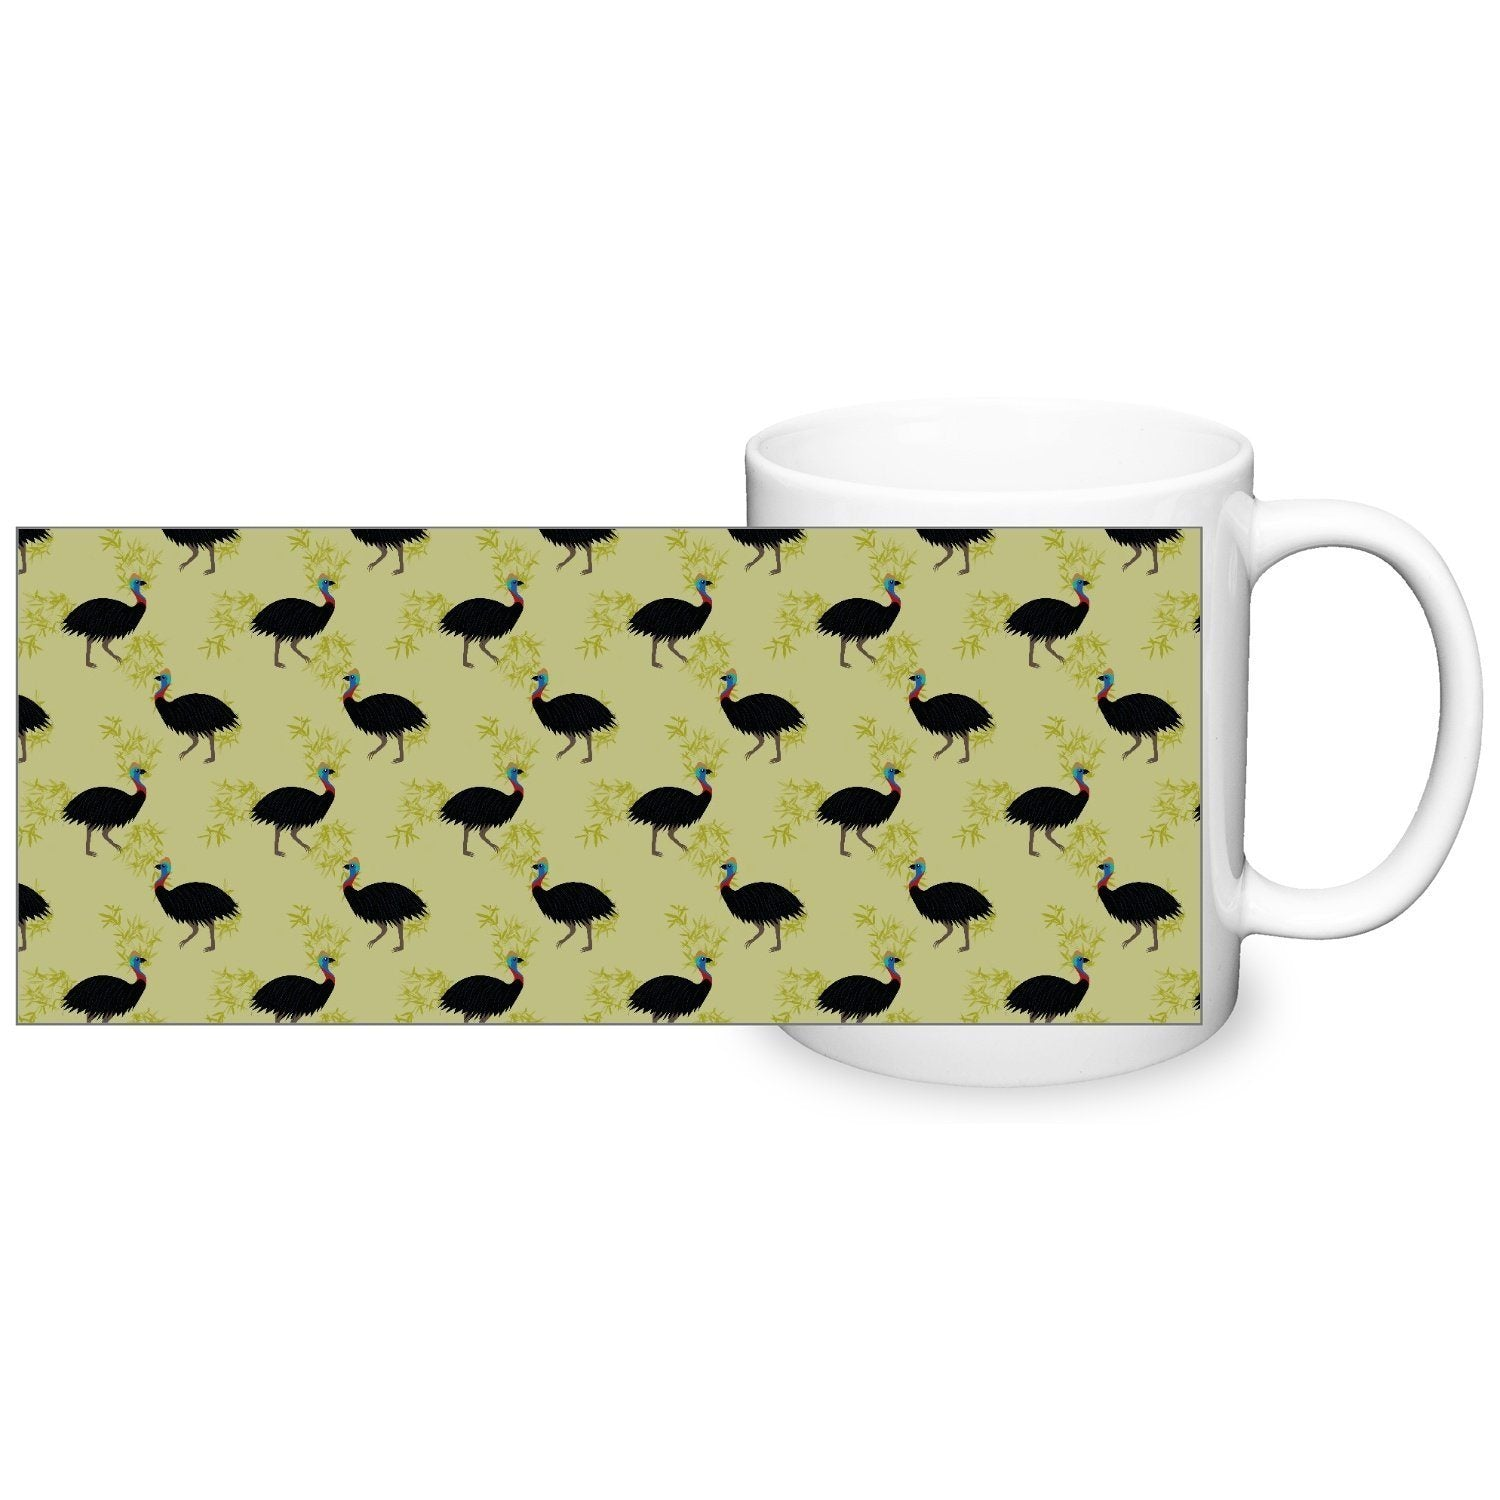 Cassowary Mug - Fair Dinkum Fashion